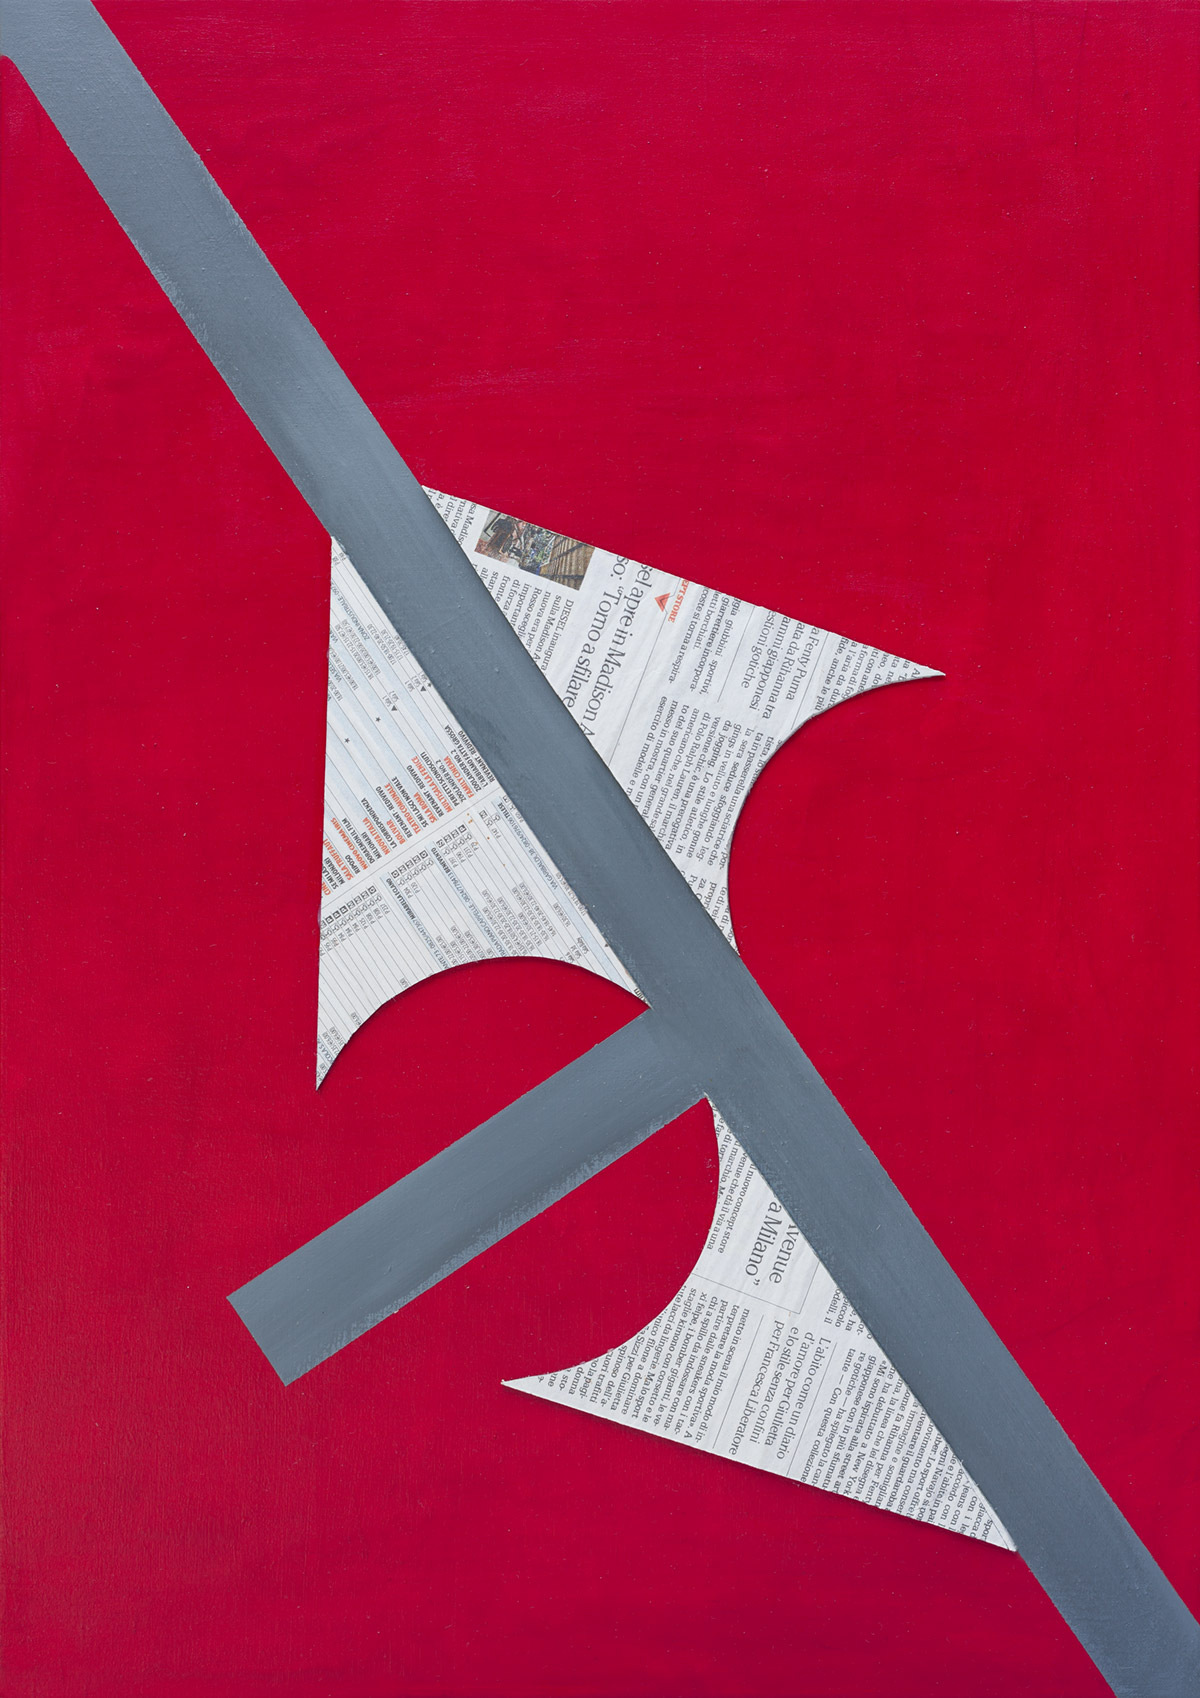 linearismo-in-rosso